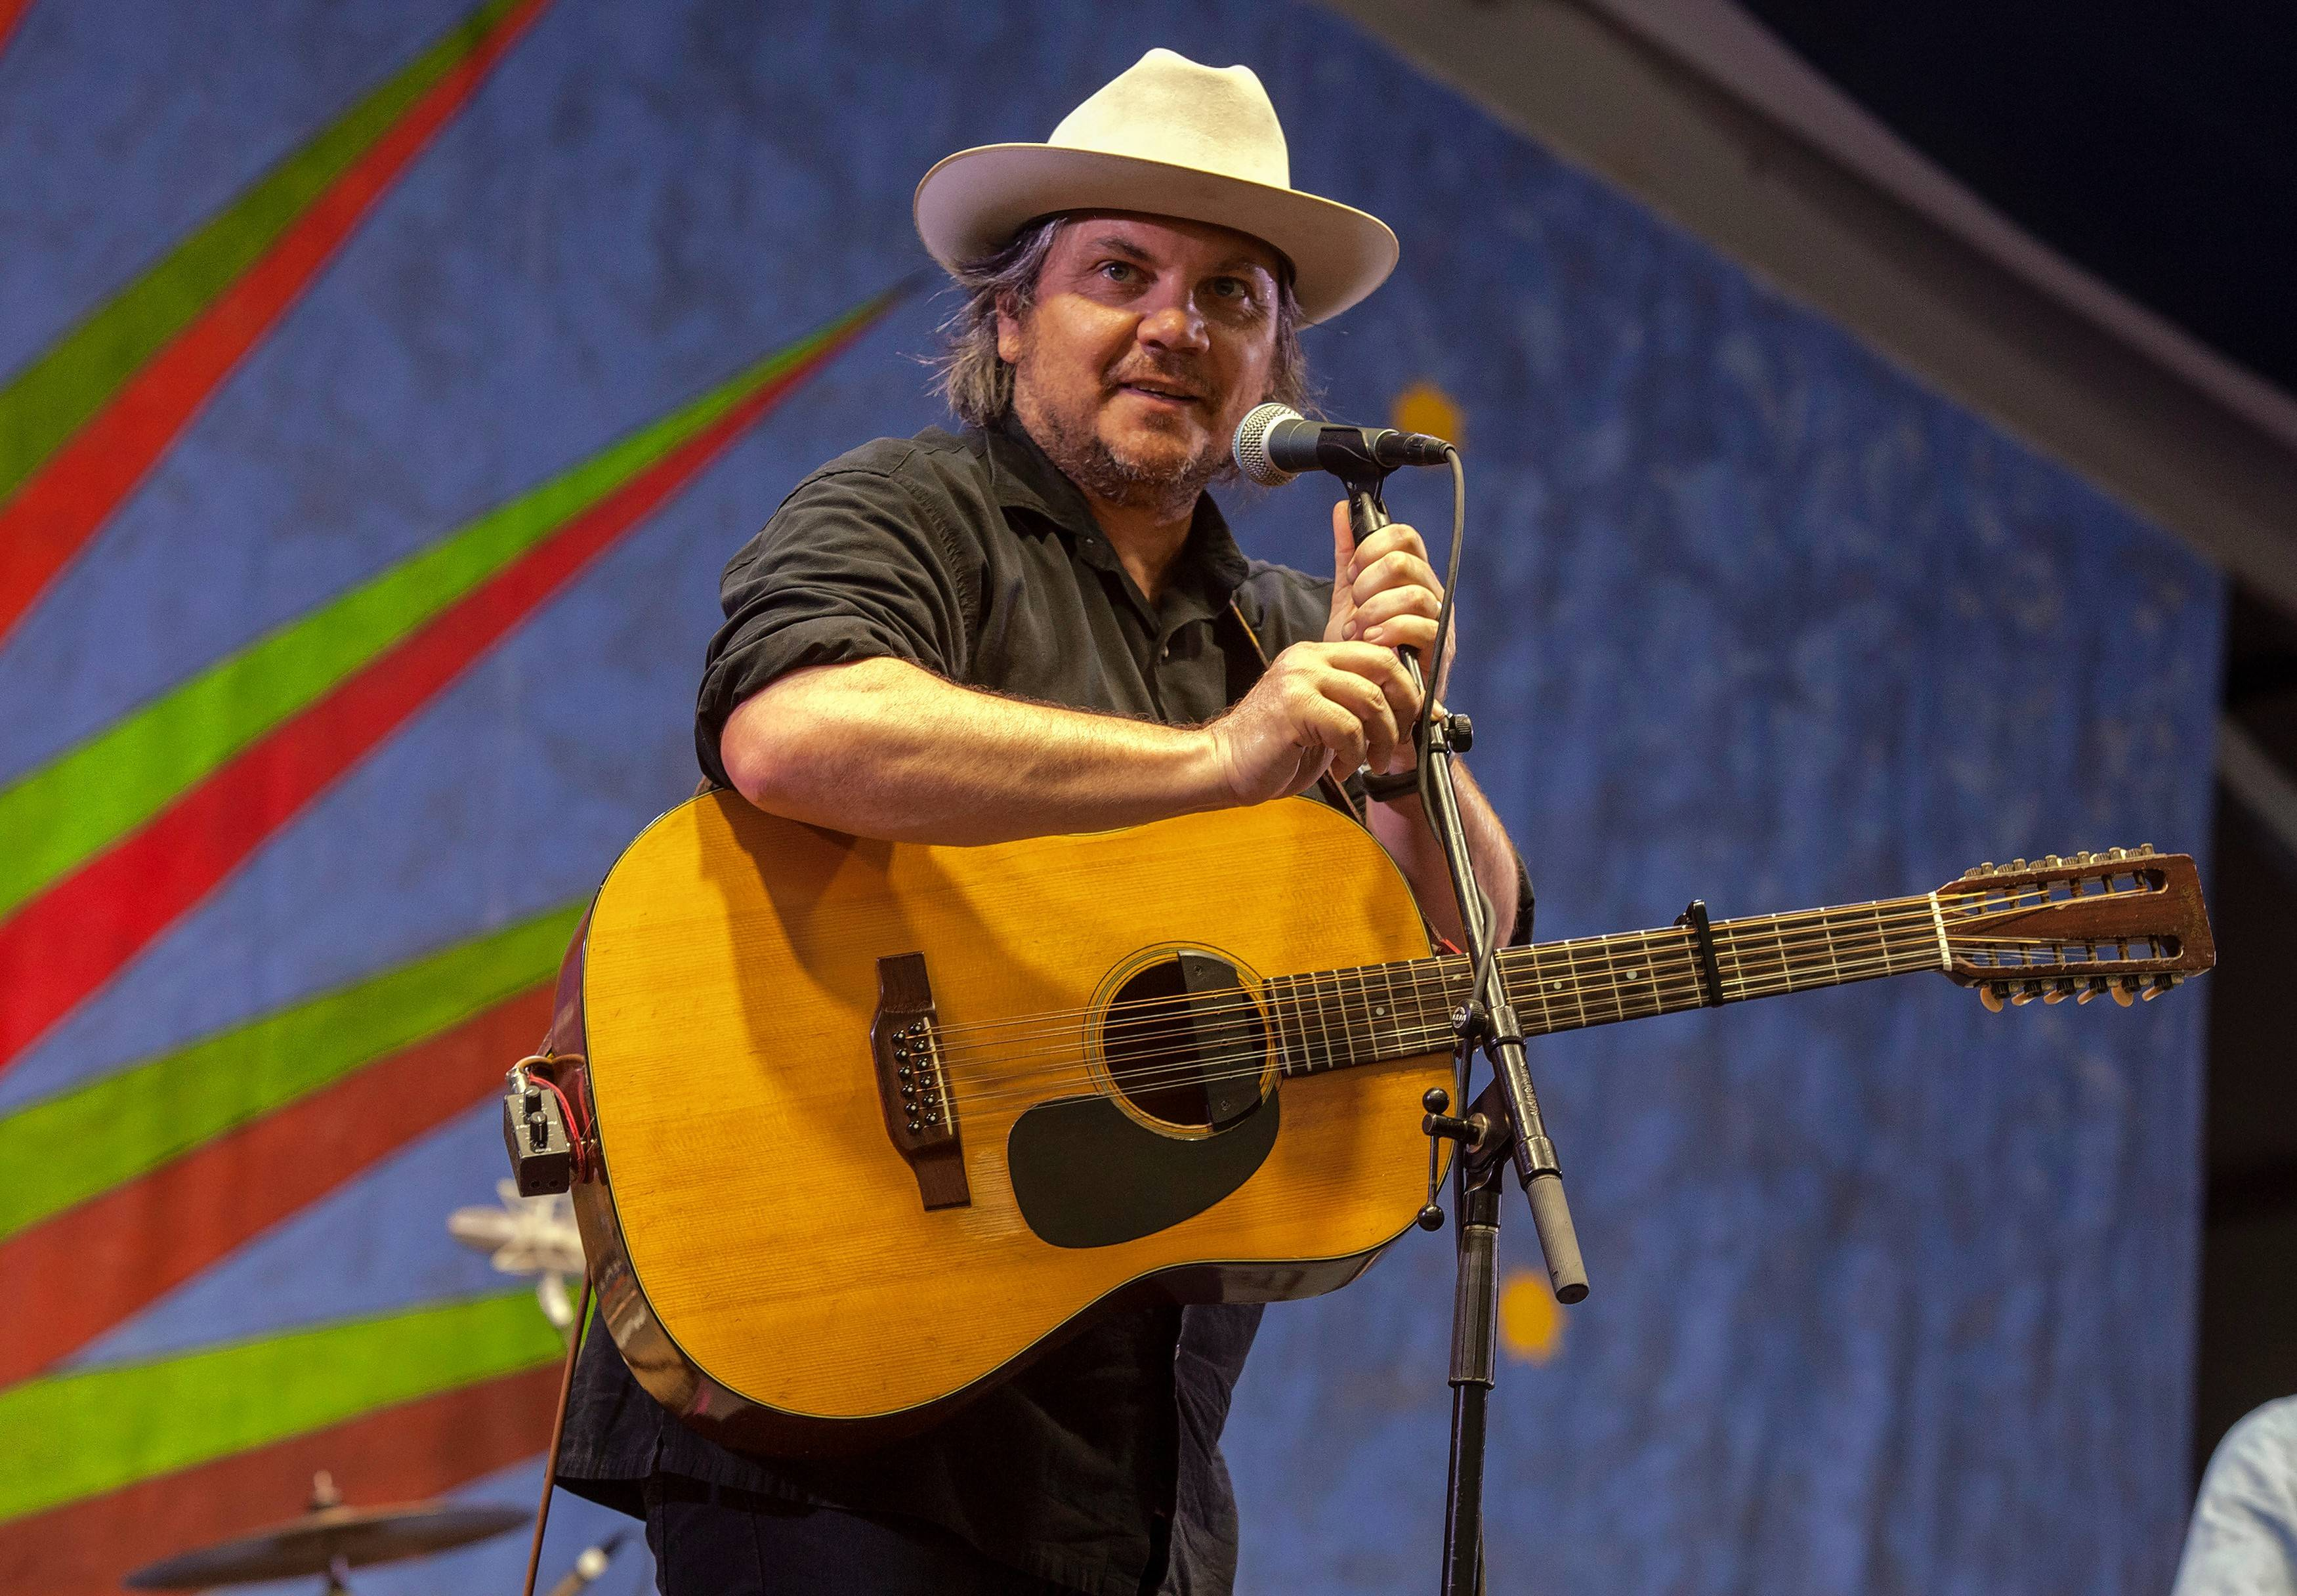 Jeff Tweedy plays his annual two-night benefit shows for education at the Vic Theatre Friday and Saturday, March 22-23.